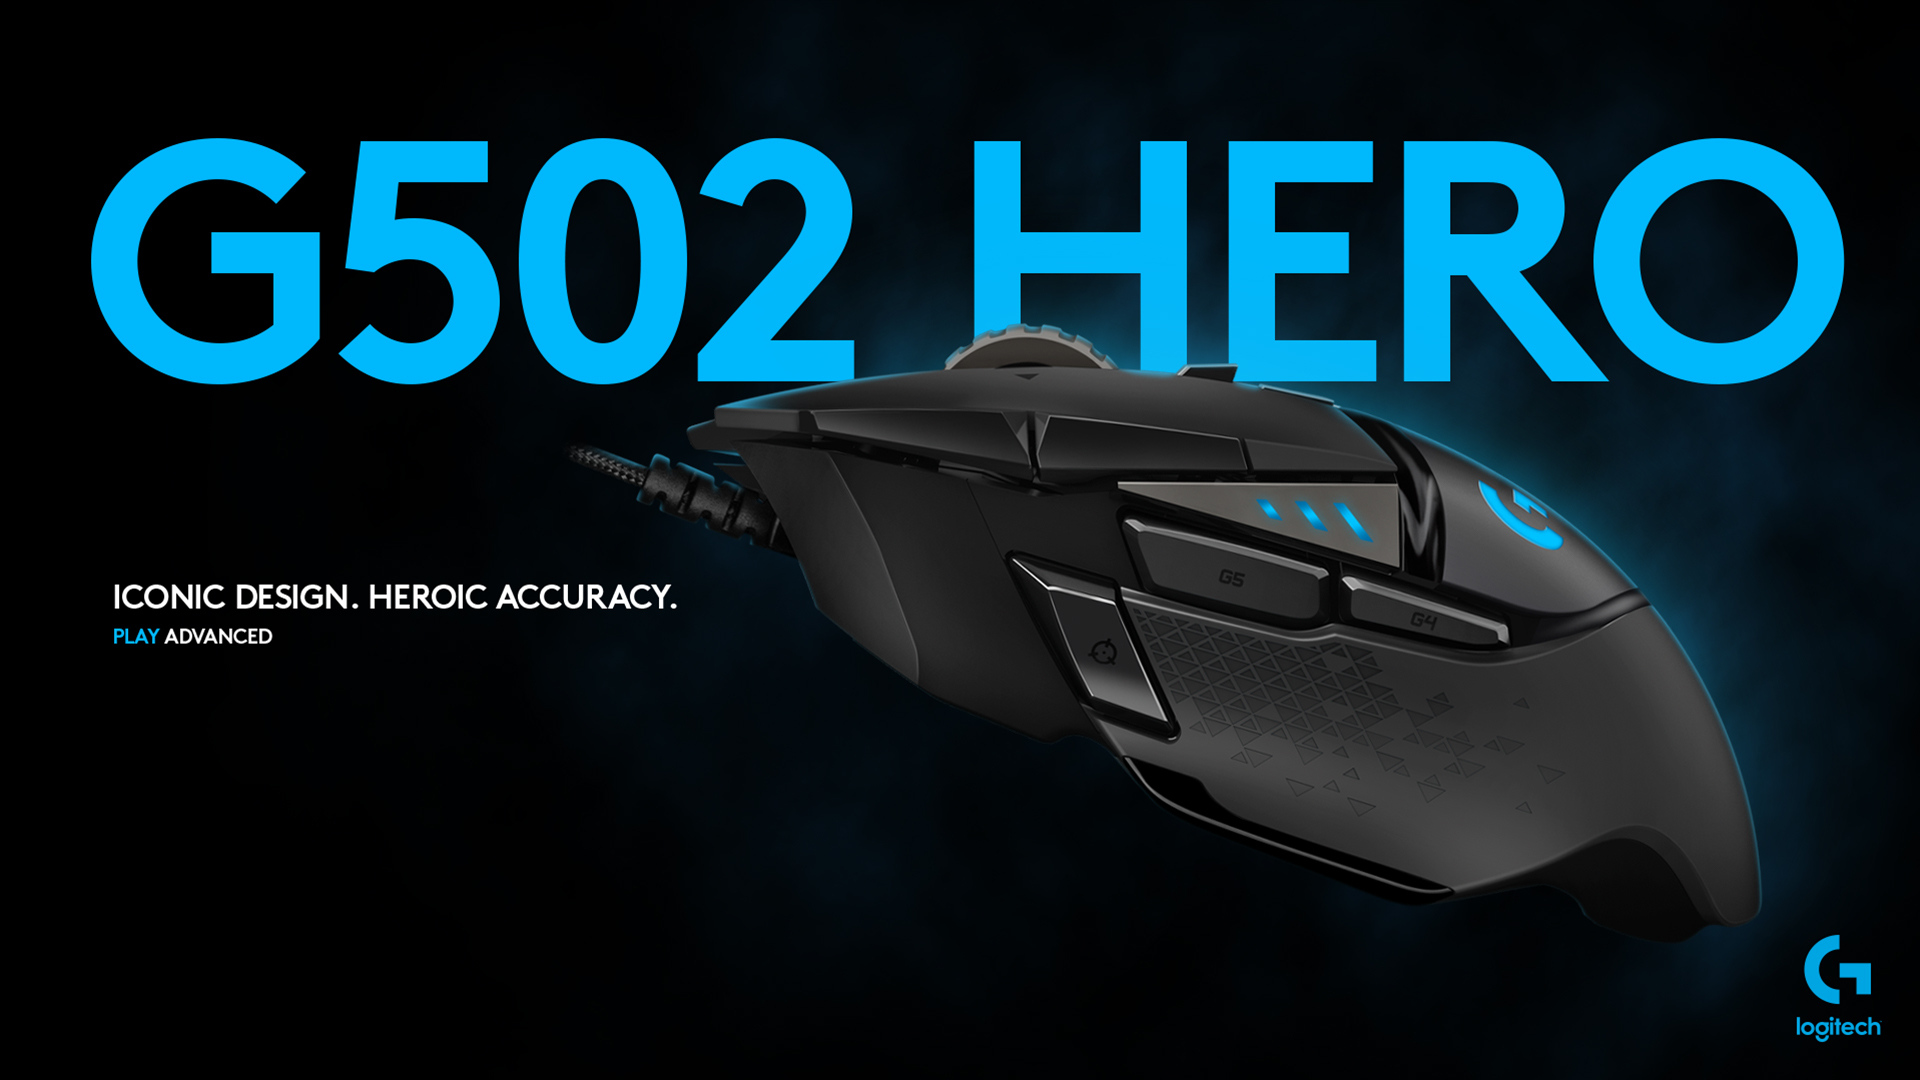 Logitech G502 Hero Gaming Mouse Pc Gaming Accessories